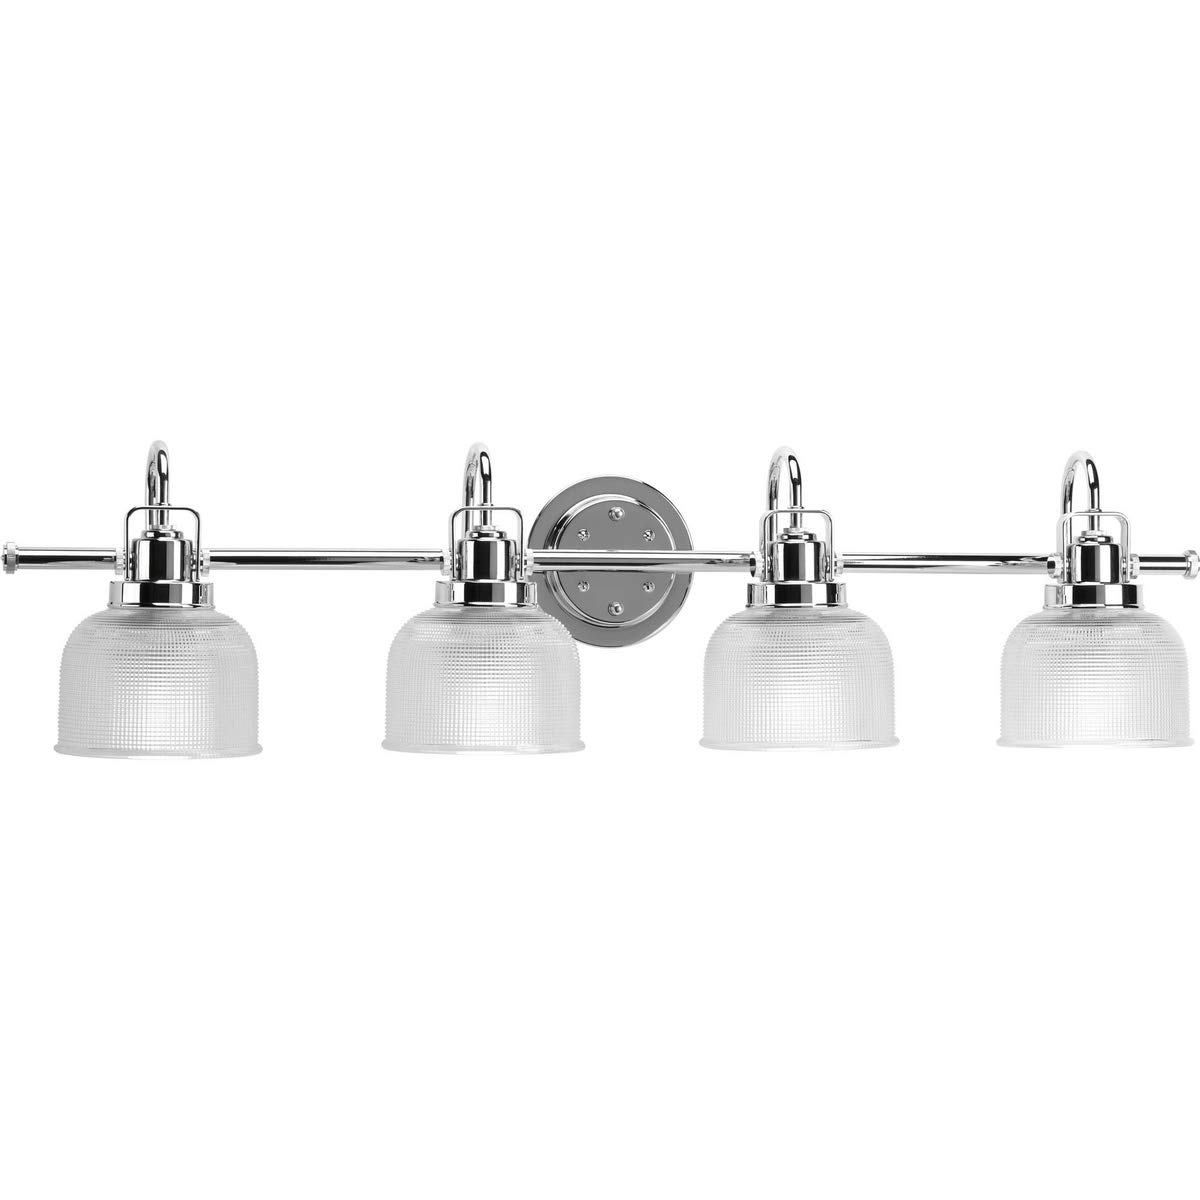 Progress Lighting P2997-15 Med Bath Bracket, 4-100-watt